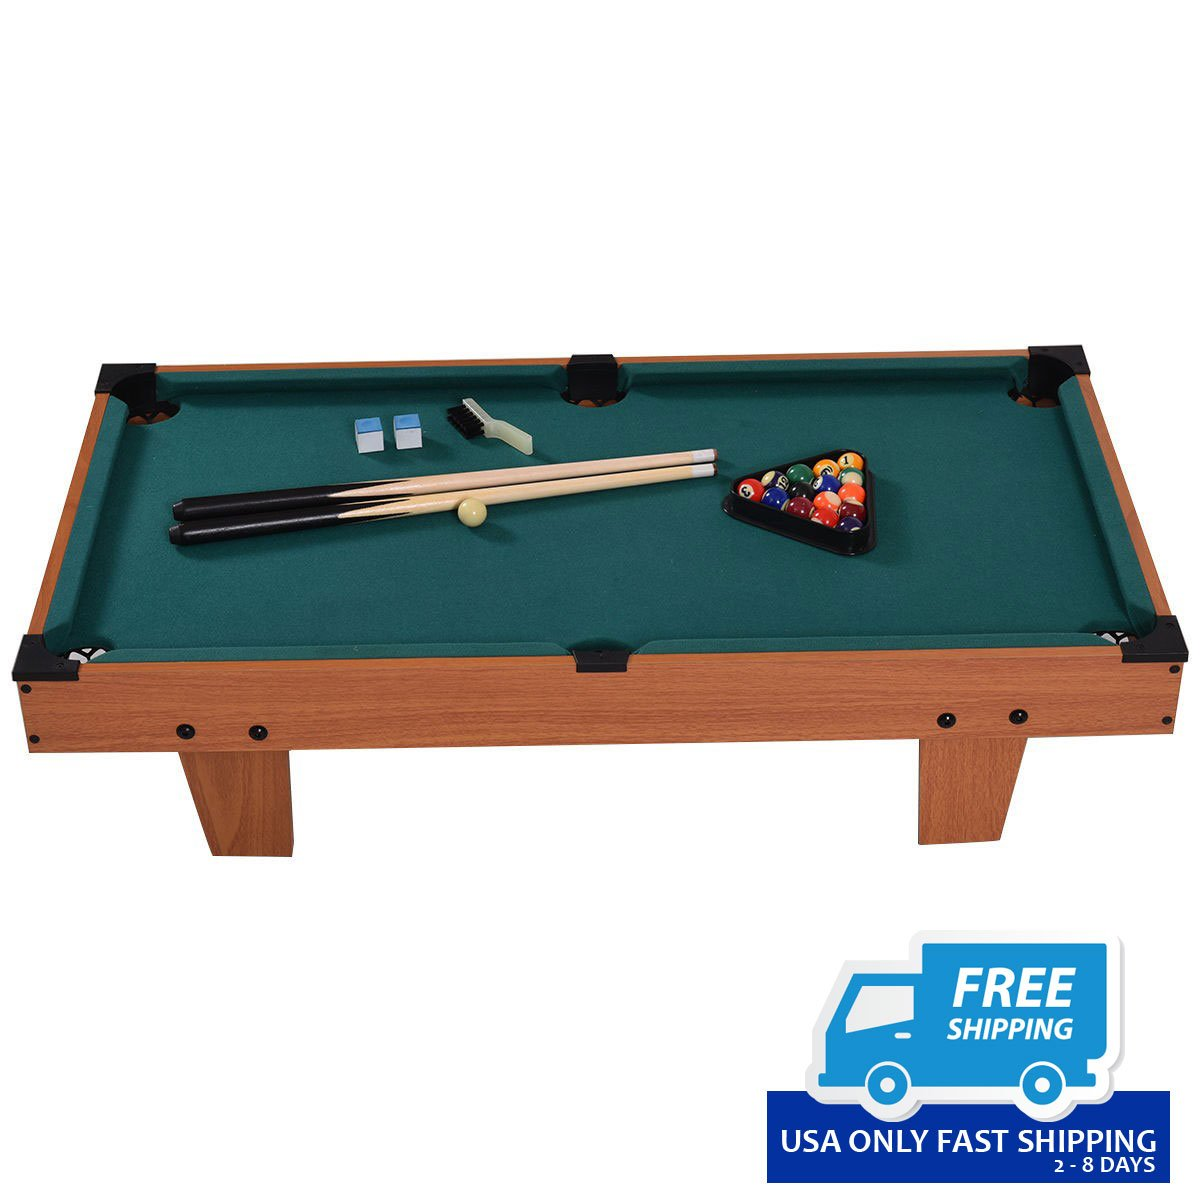 36u201d Mini Table Top Pool Table Game Billiard Set Cues Balls Gift Indoor  Sports